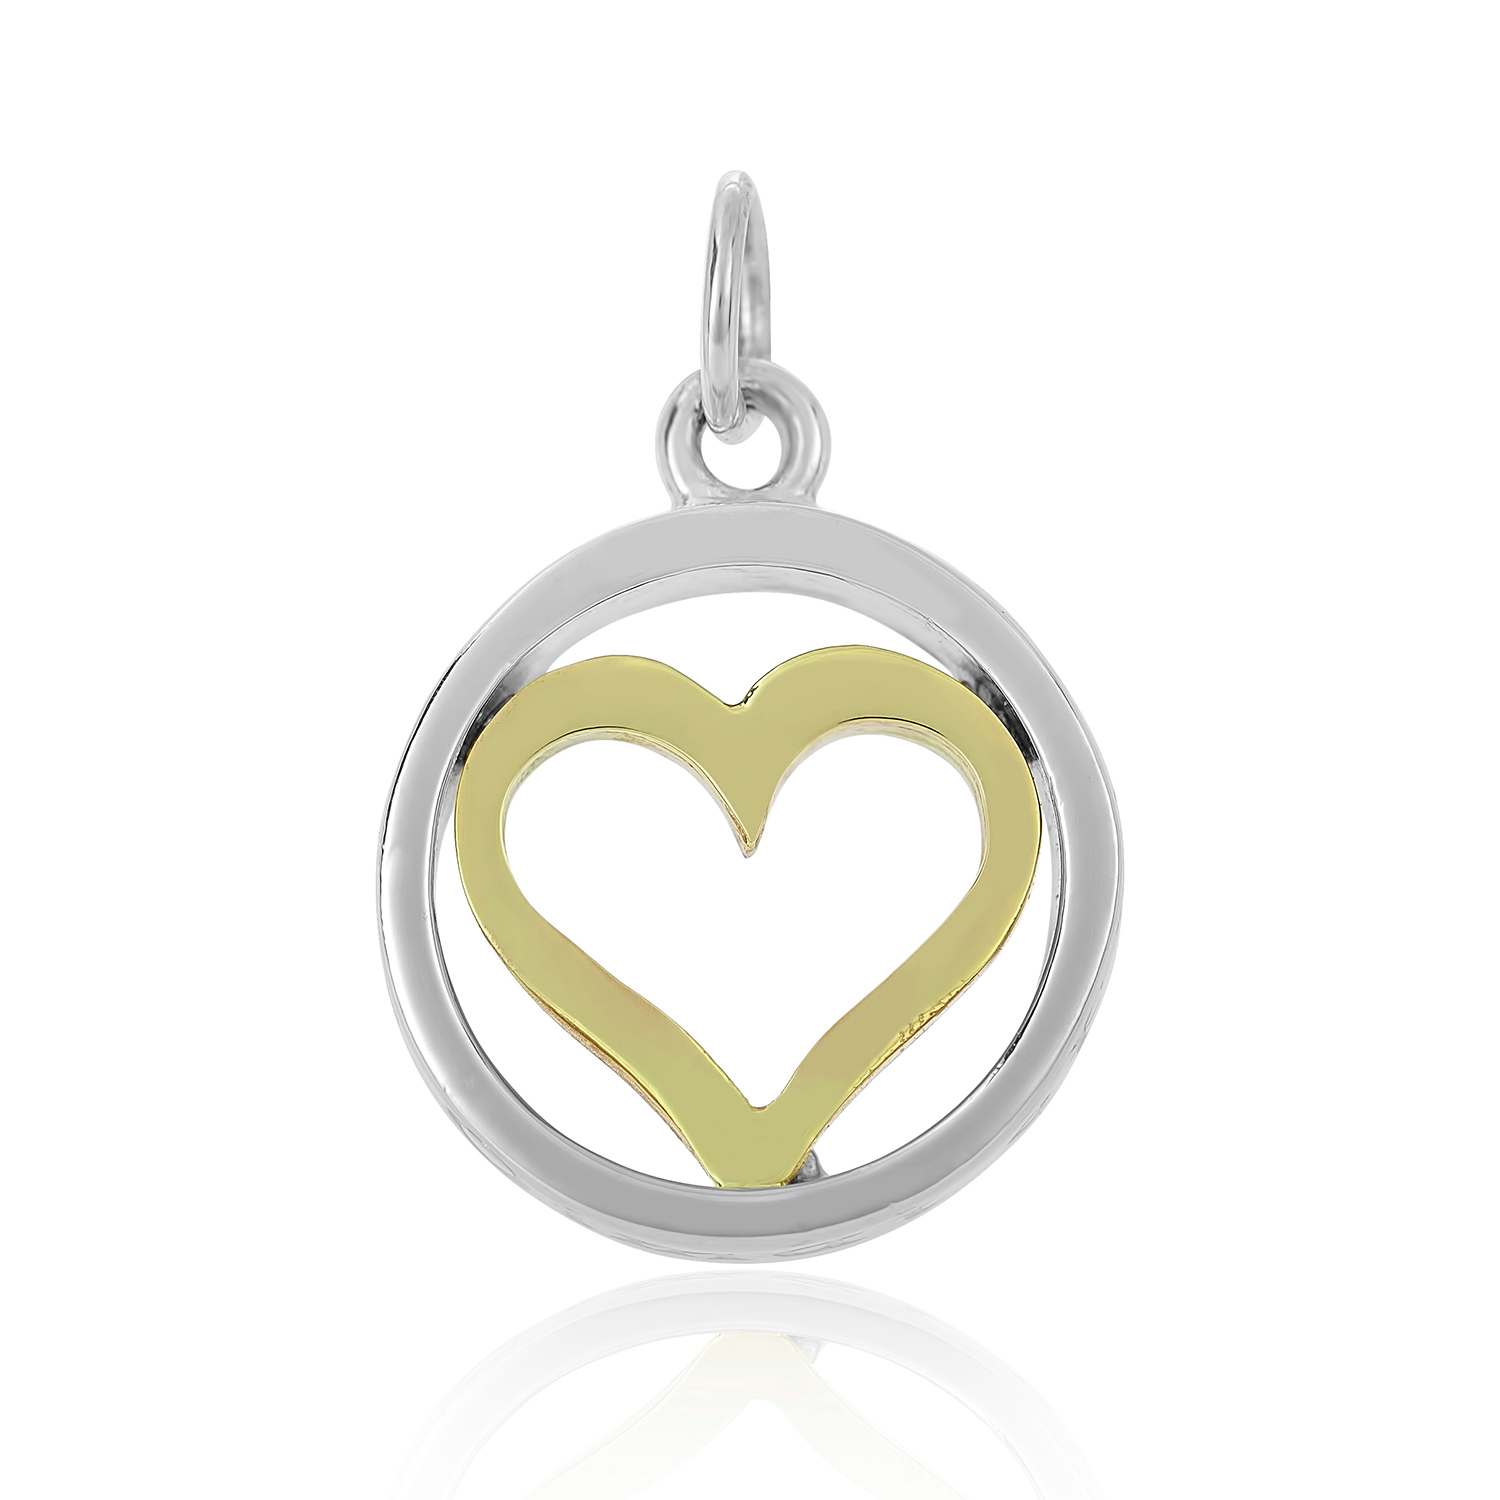 Sterling Silver & 9ct Yellow Gold Charm / Pendant